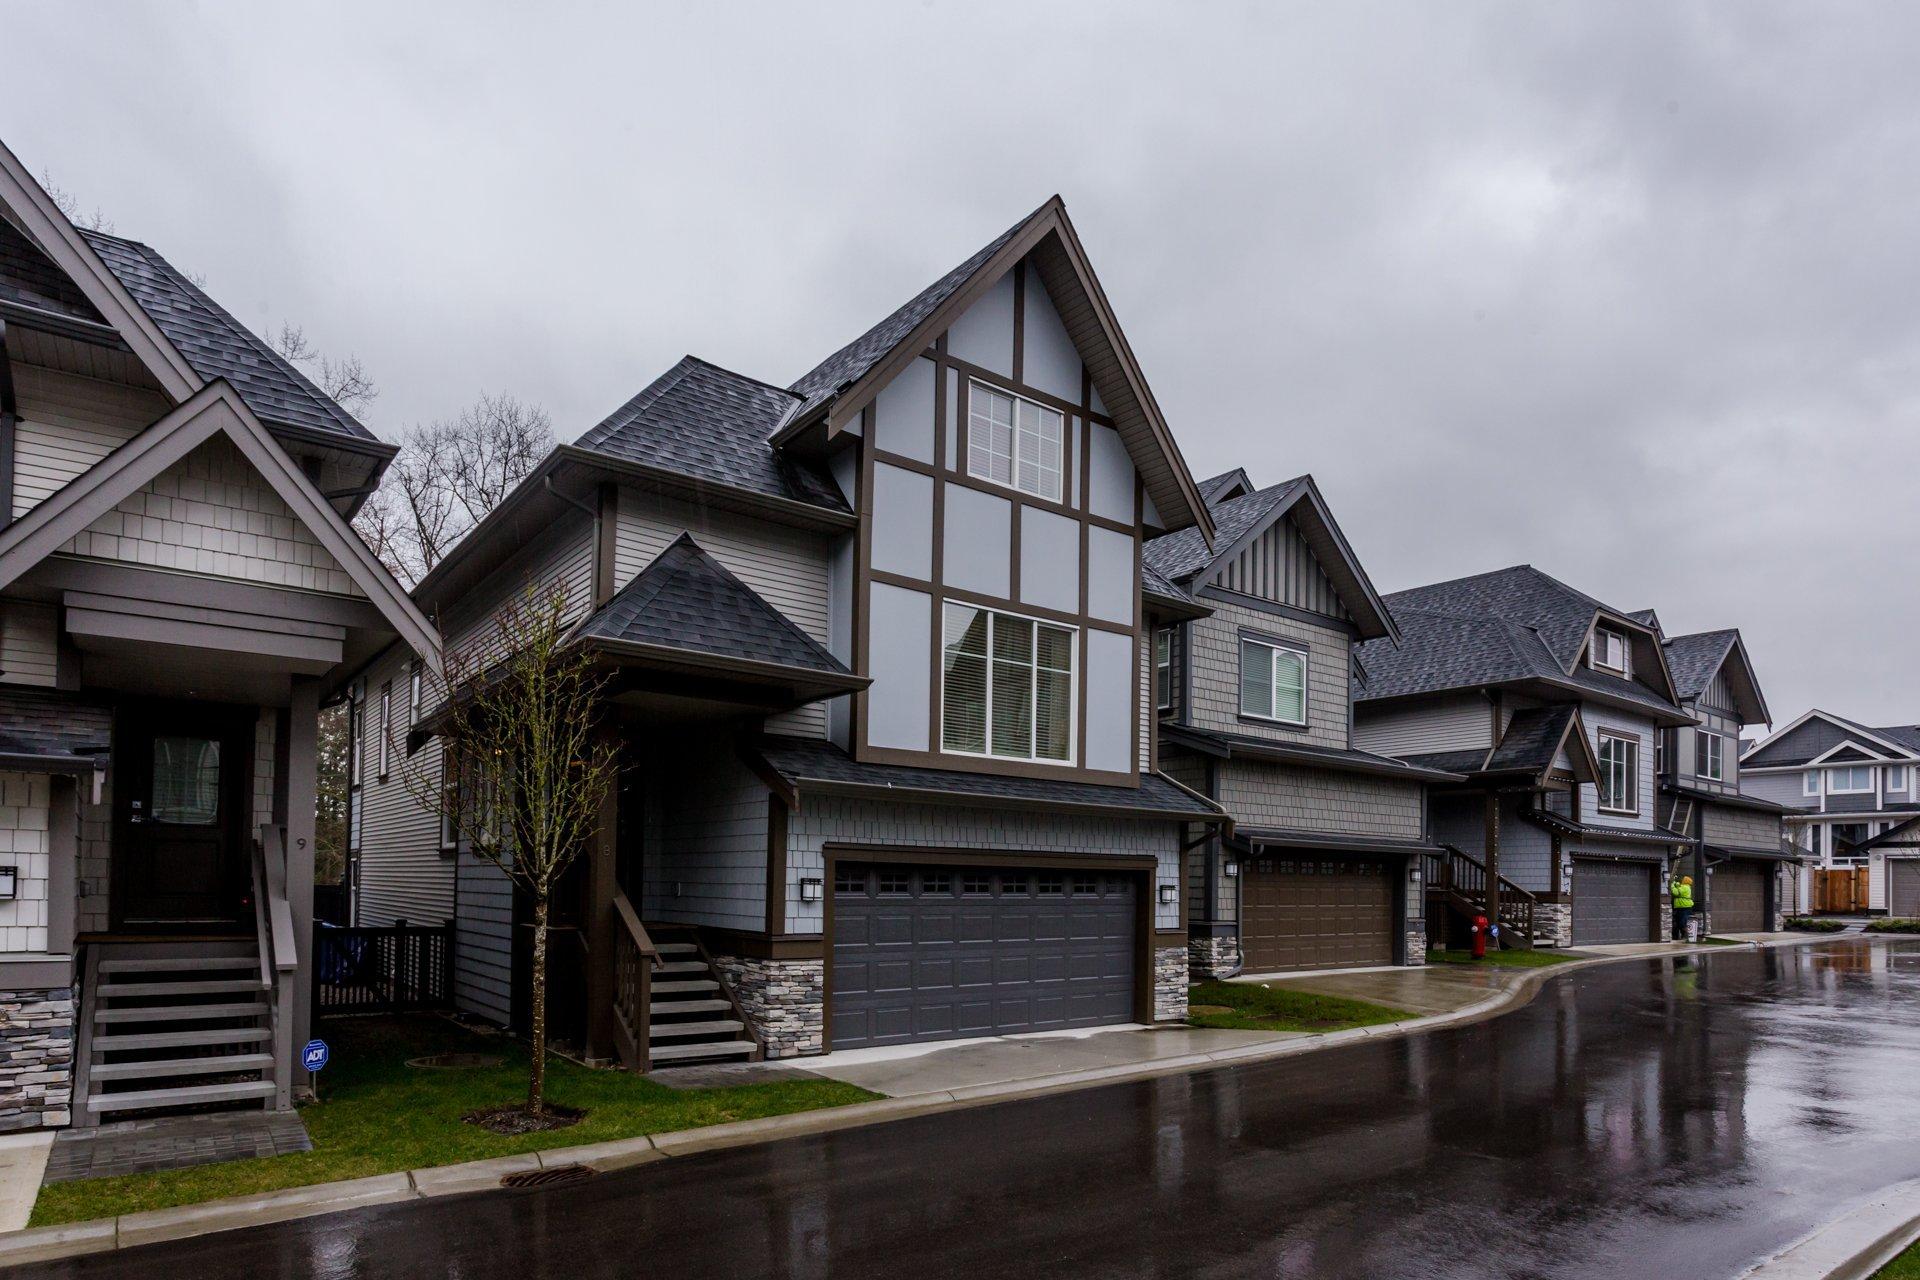 """Photo 2: Photos: 8 8217 204B Street in Langley: Willoughby Heights Townhouse for sale in """"EVERLY GREEN"""" : MLS®# R2236678"""